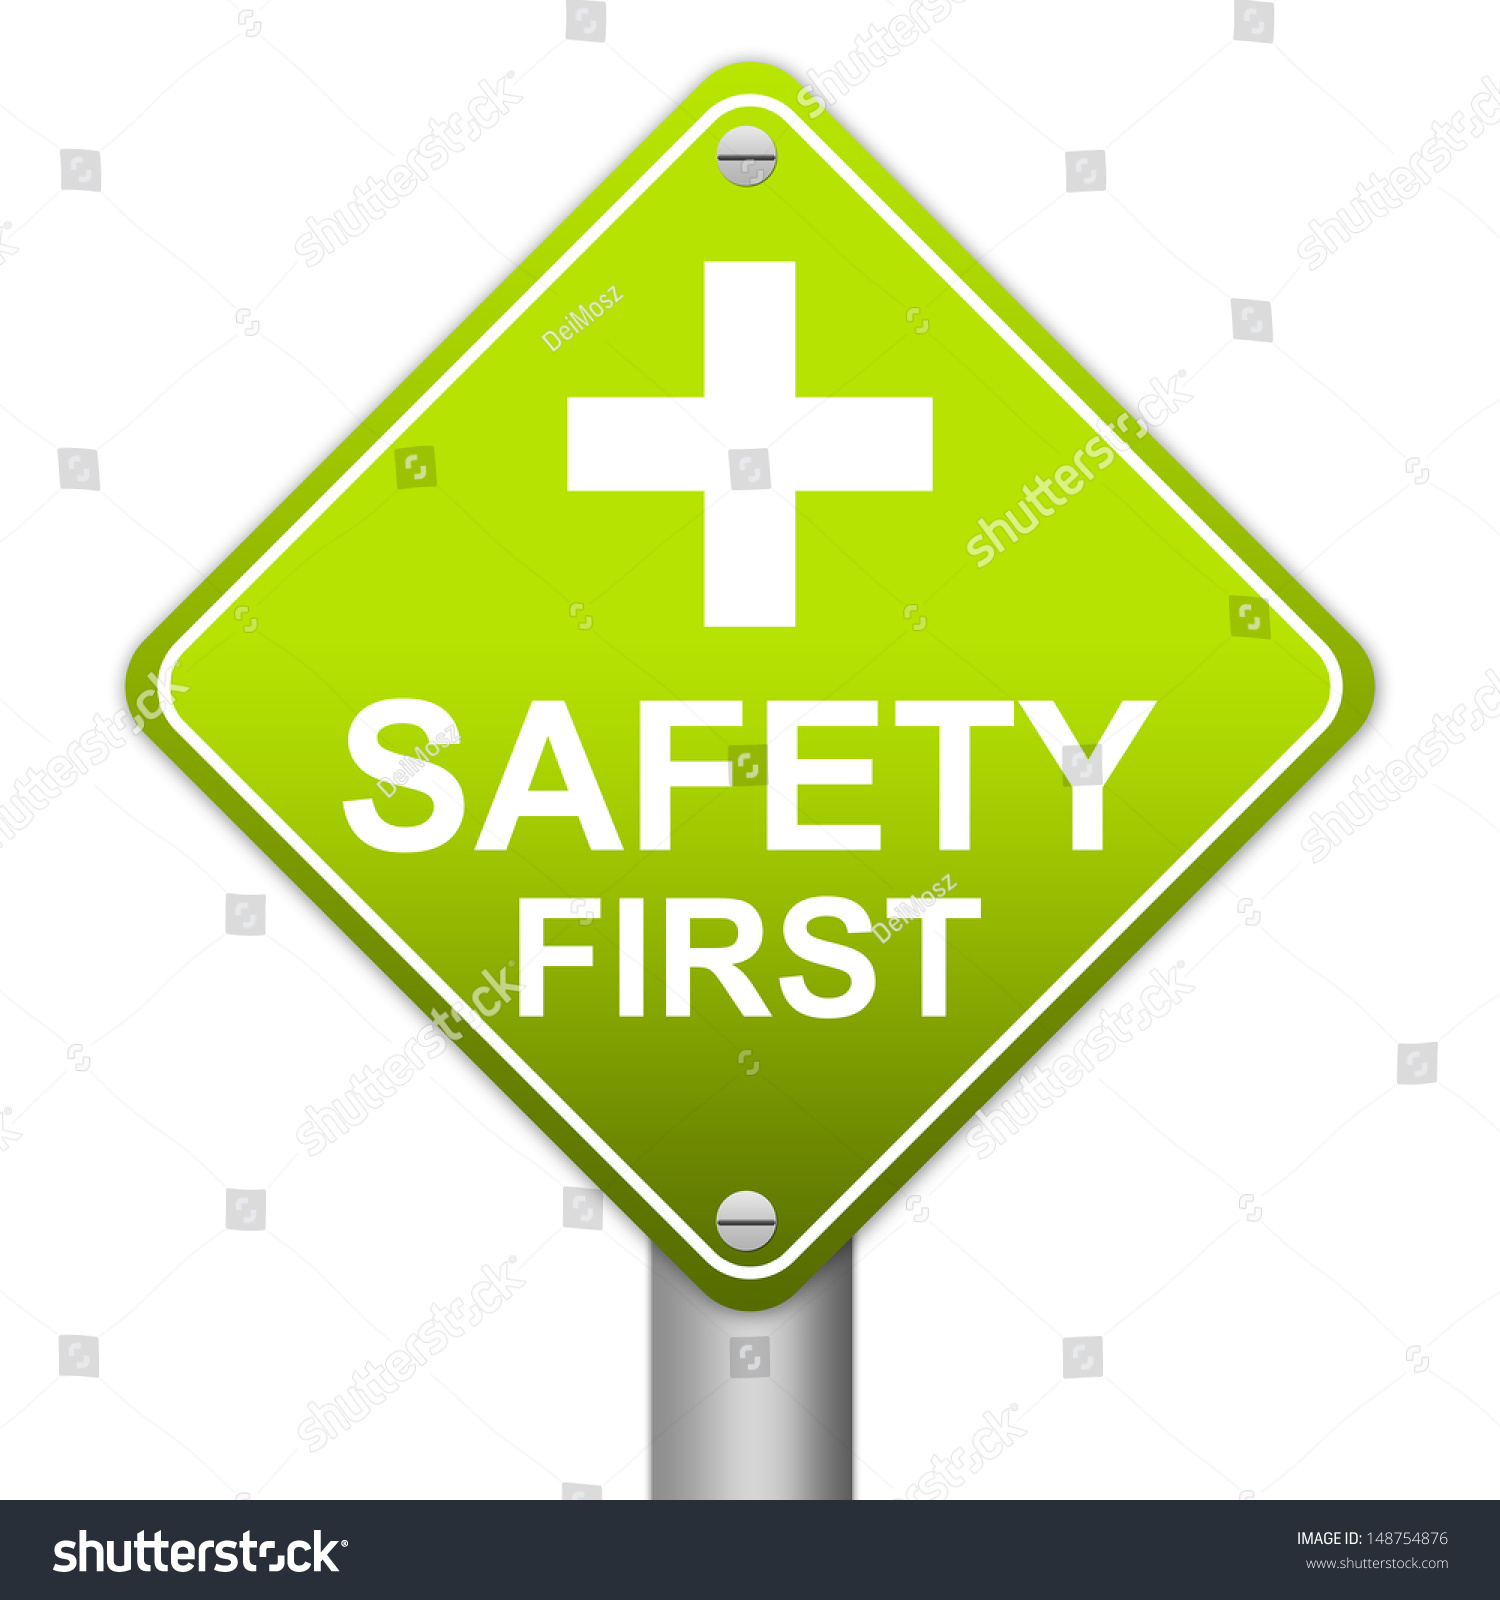 Royalty Free The Green Glossy Style Safety First 148754876 Stock